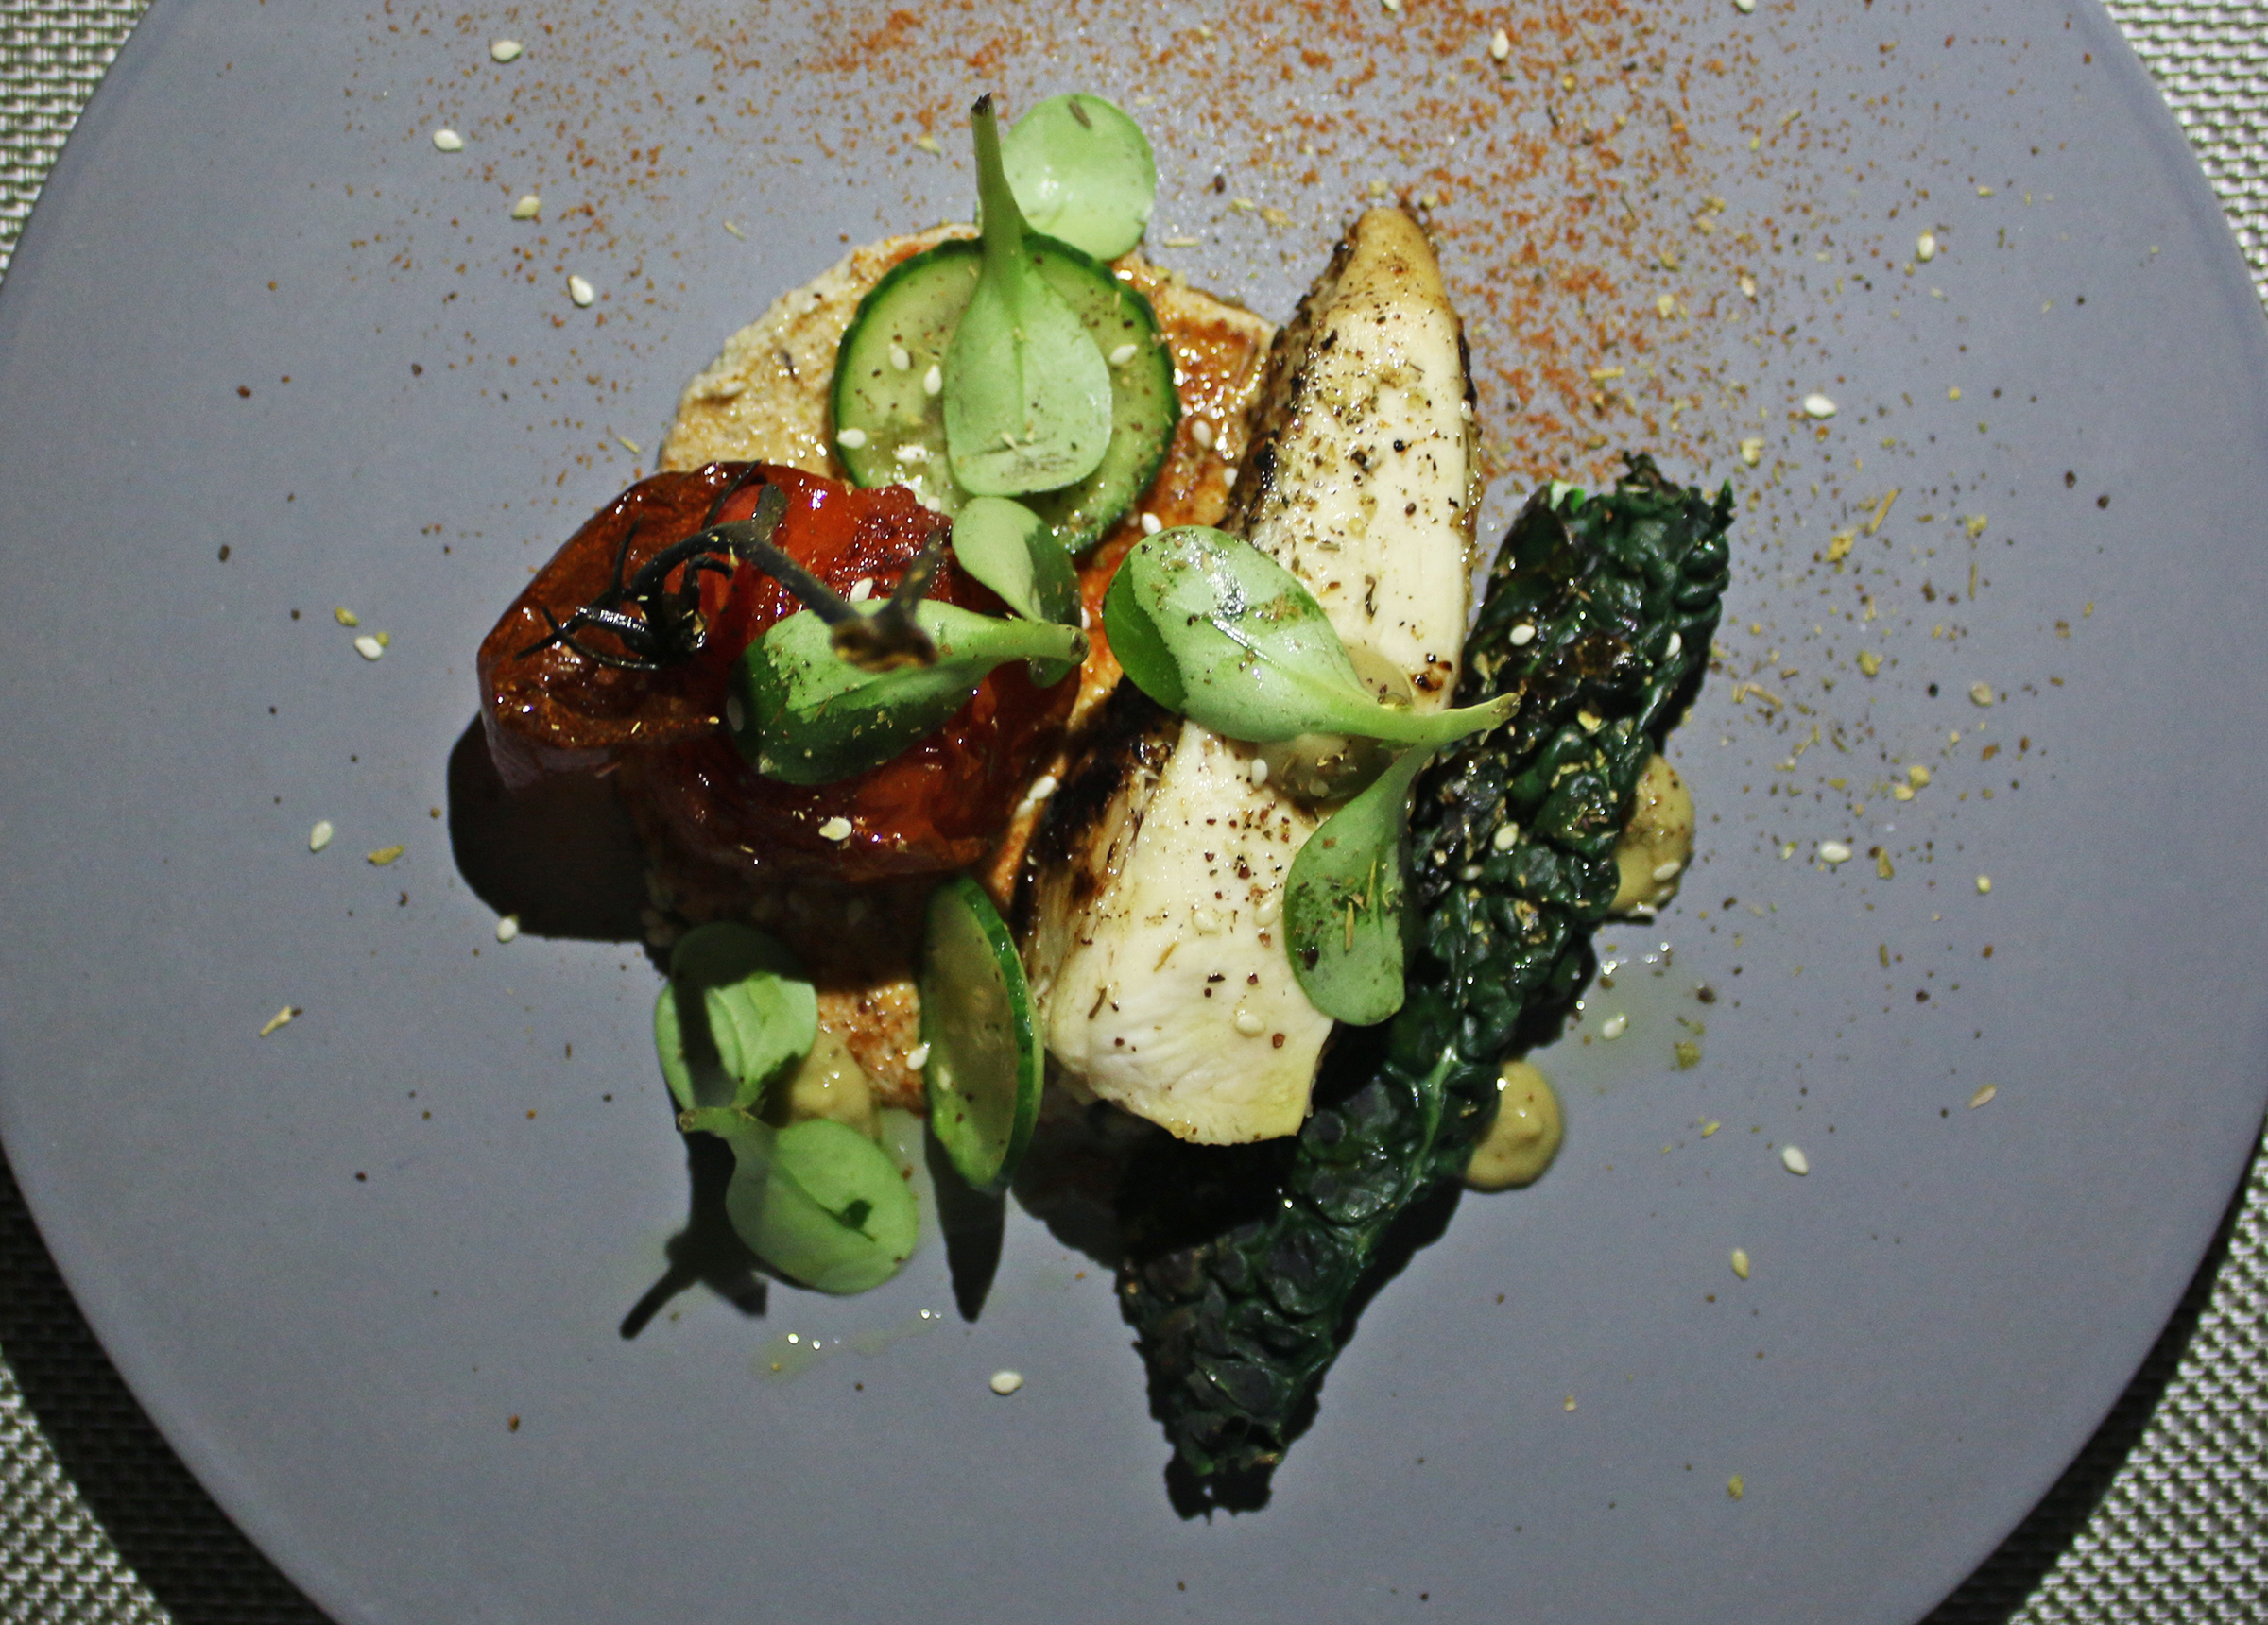 Mary's Chicken: blistered tomato, persian cucumber